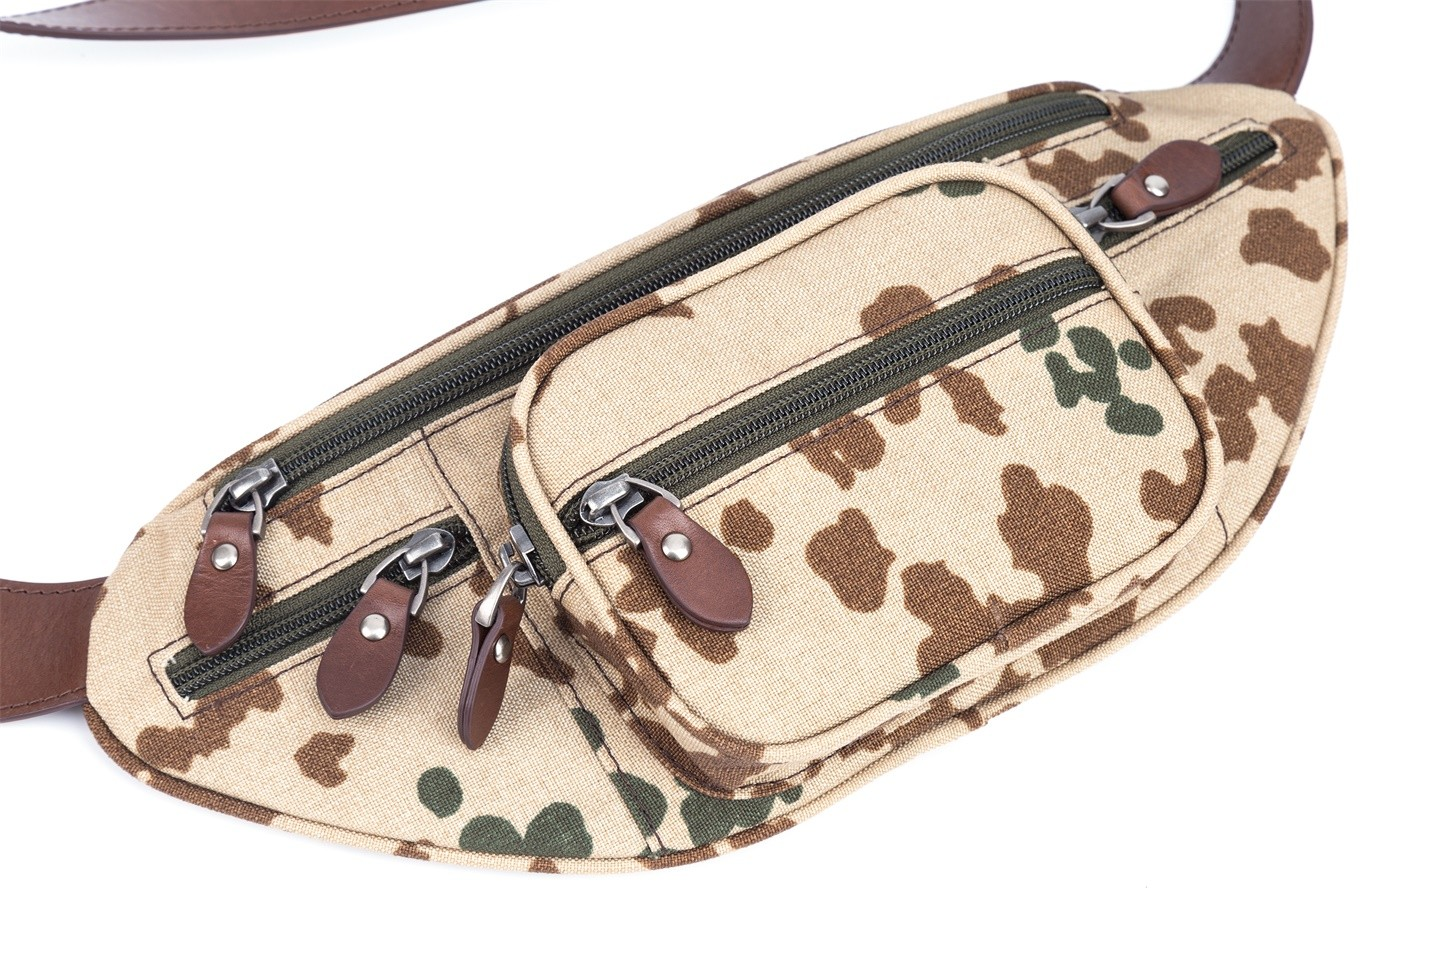 GF bags-Body Bag Genuine Leather Wax Leather Strap Camouflage Nylon Pocket-gaofeng Bags-7